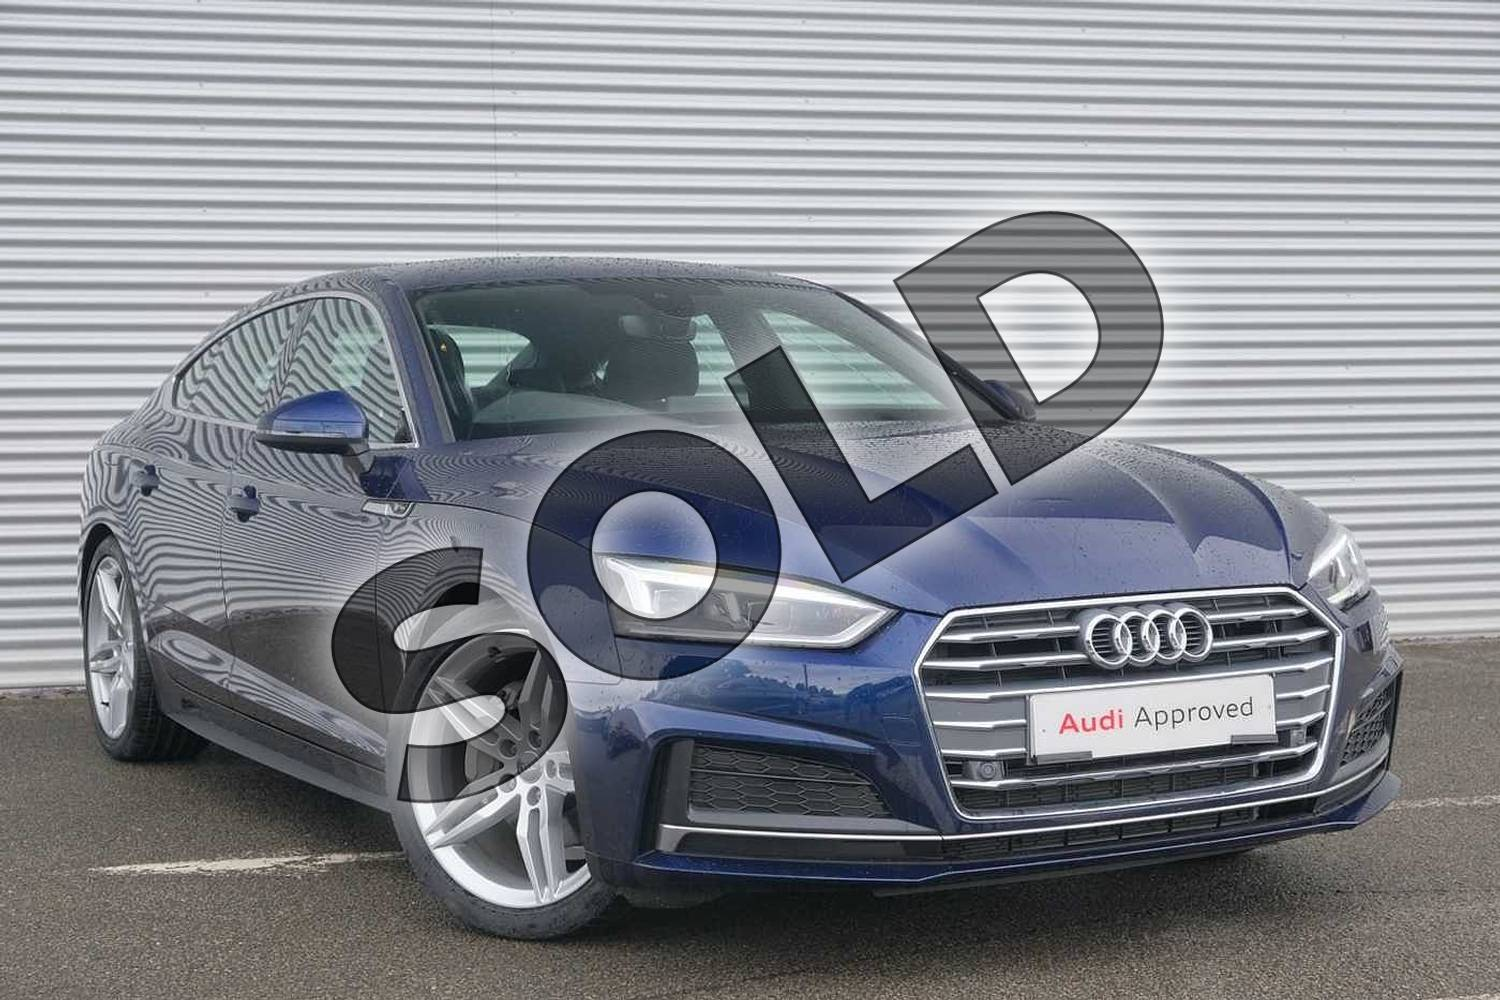 Audi A5 40 Tdi S Line 5dr S Tronic For Sale At Coventry Audi Ref 021 U167725